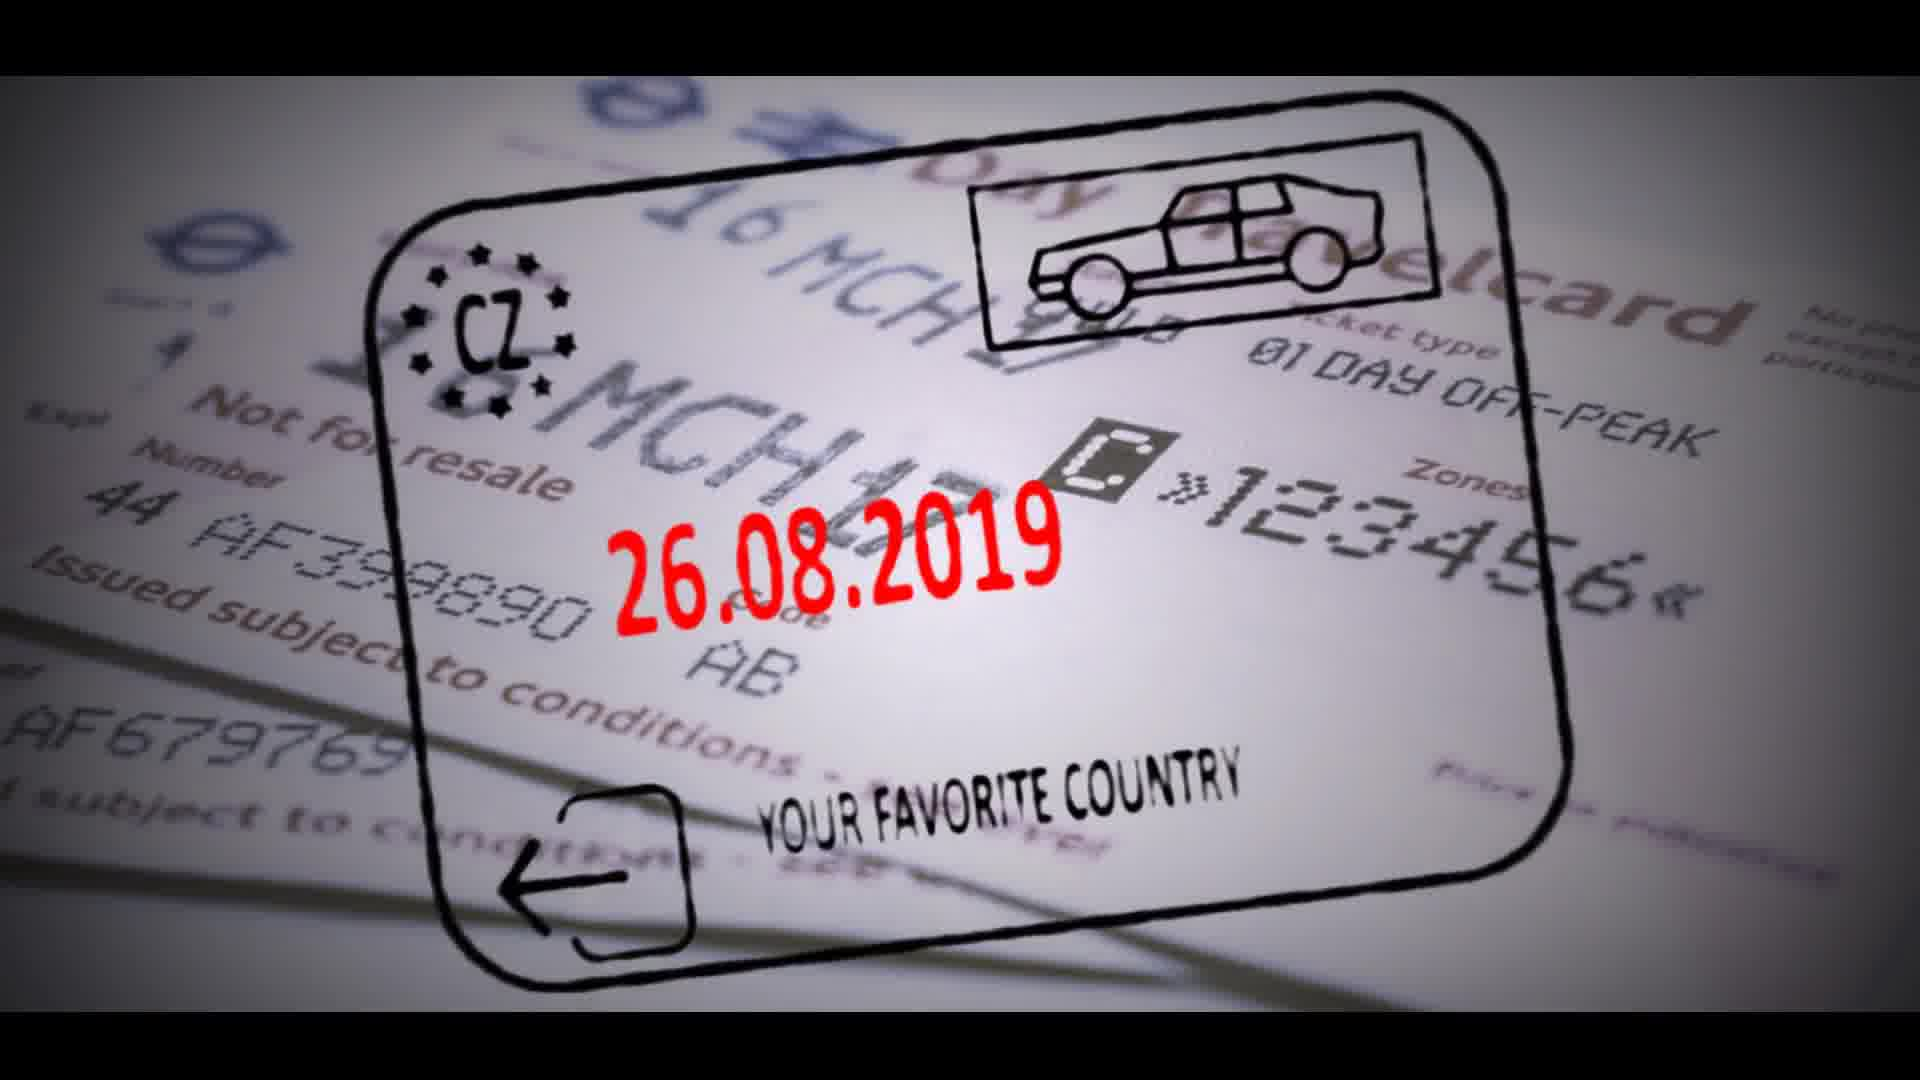 50 Travel Stamps Videohive 23673412 After Effects Image 12